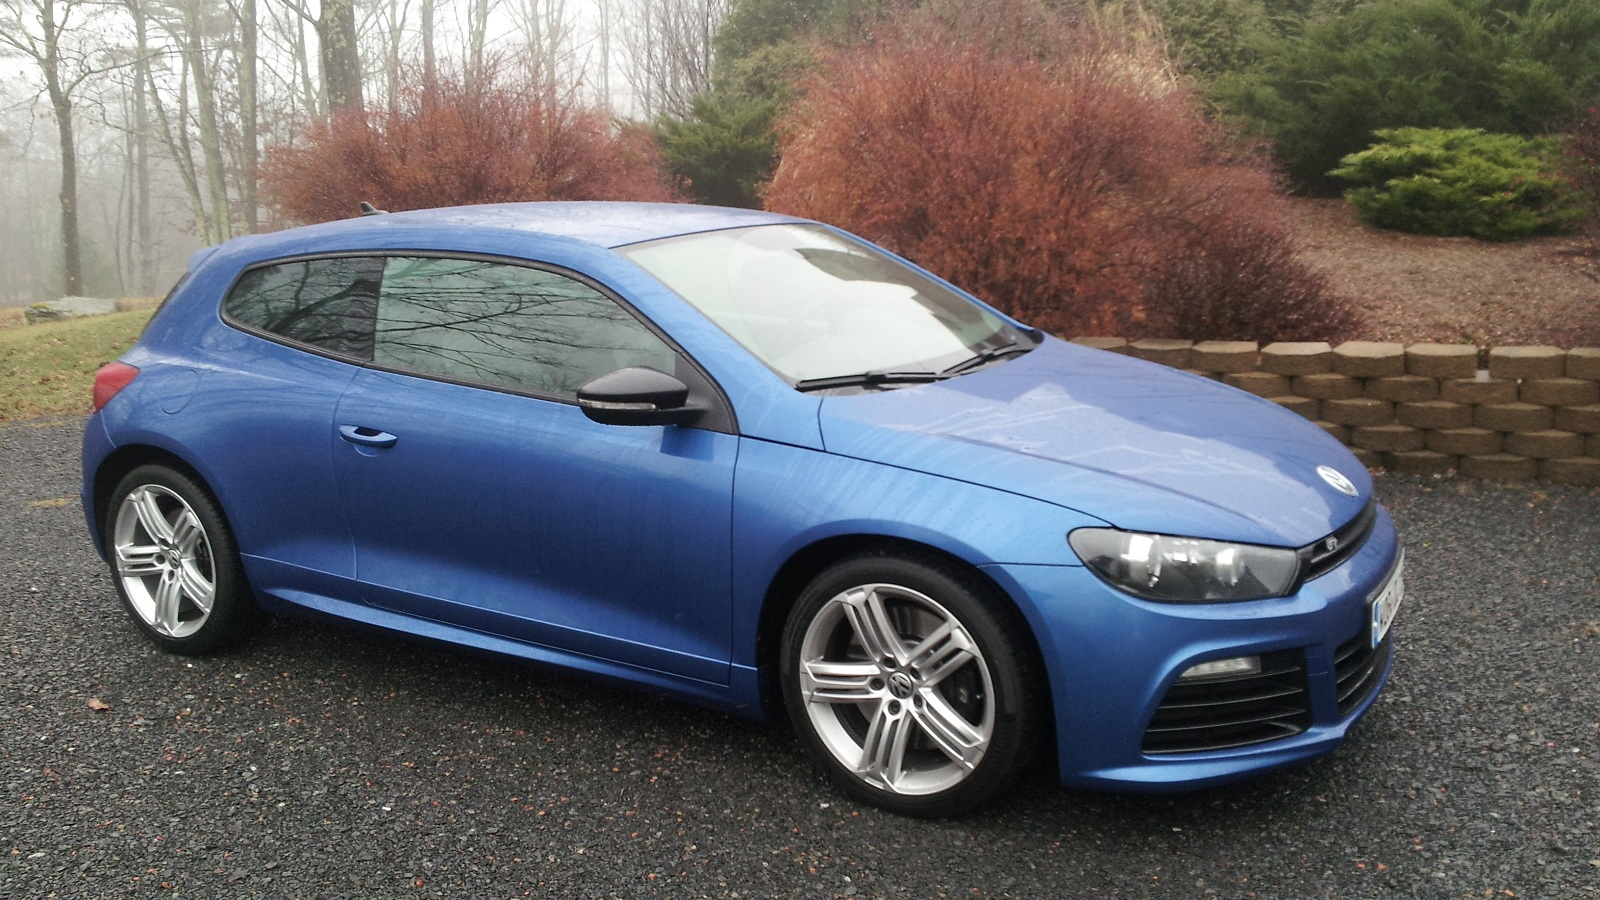 Volkswagen Scirocco R (European model), Catskill Mountains, NY, Dec 2013